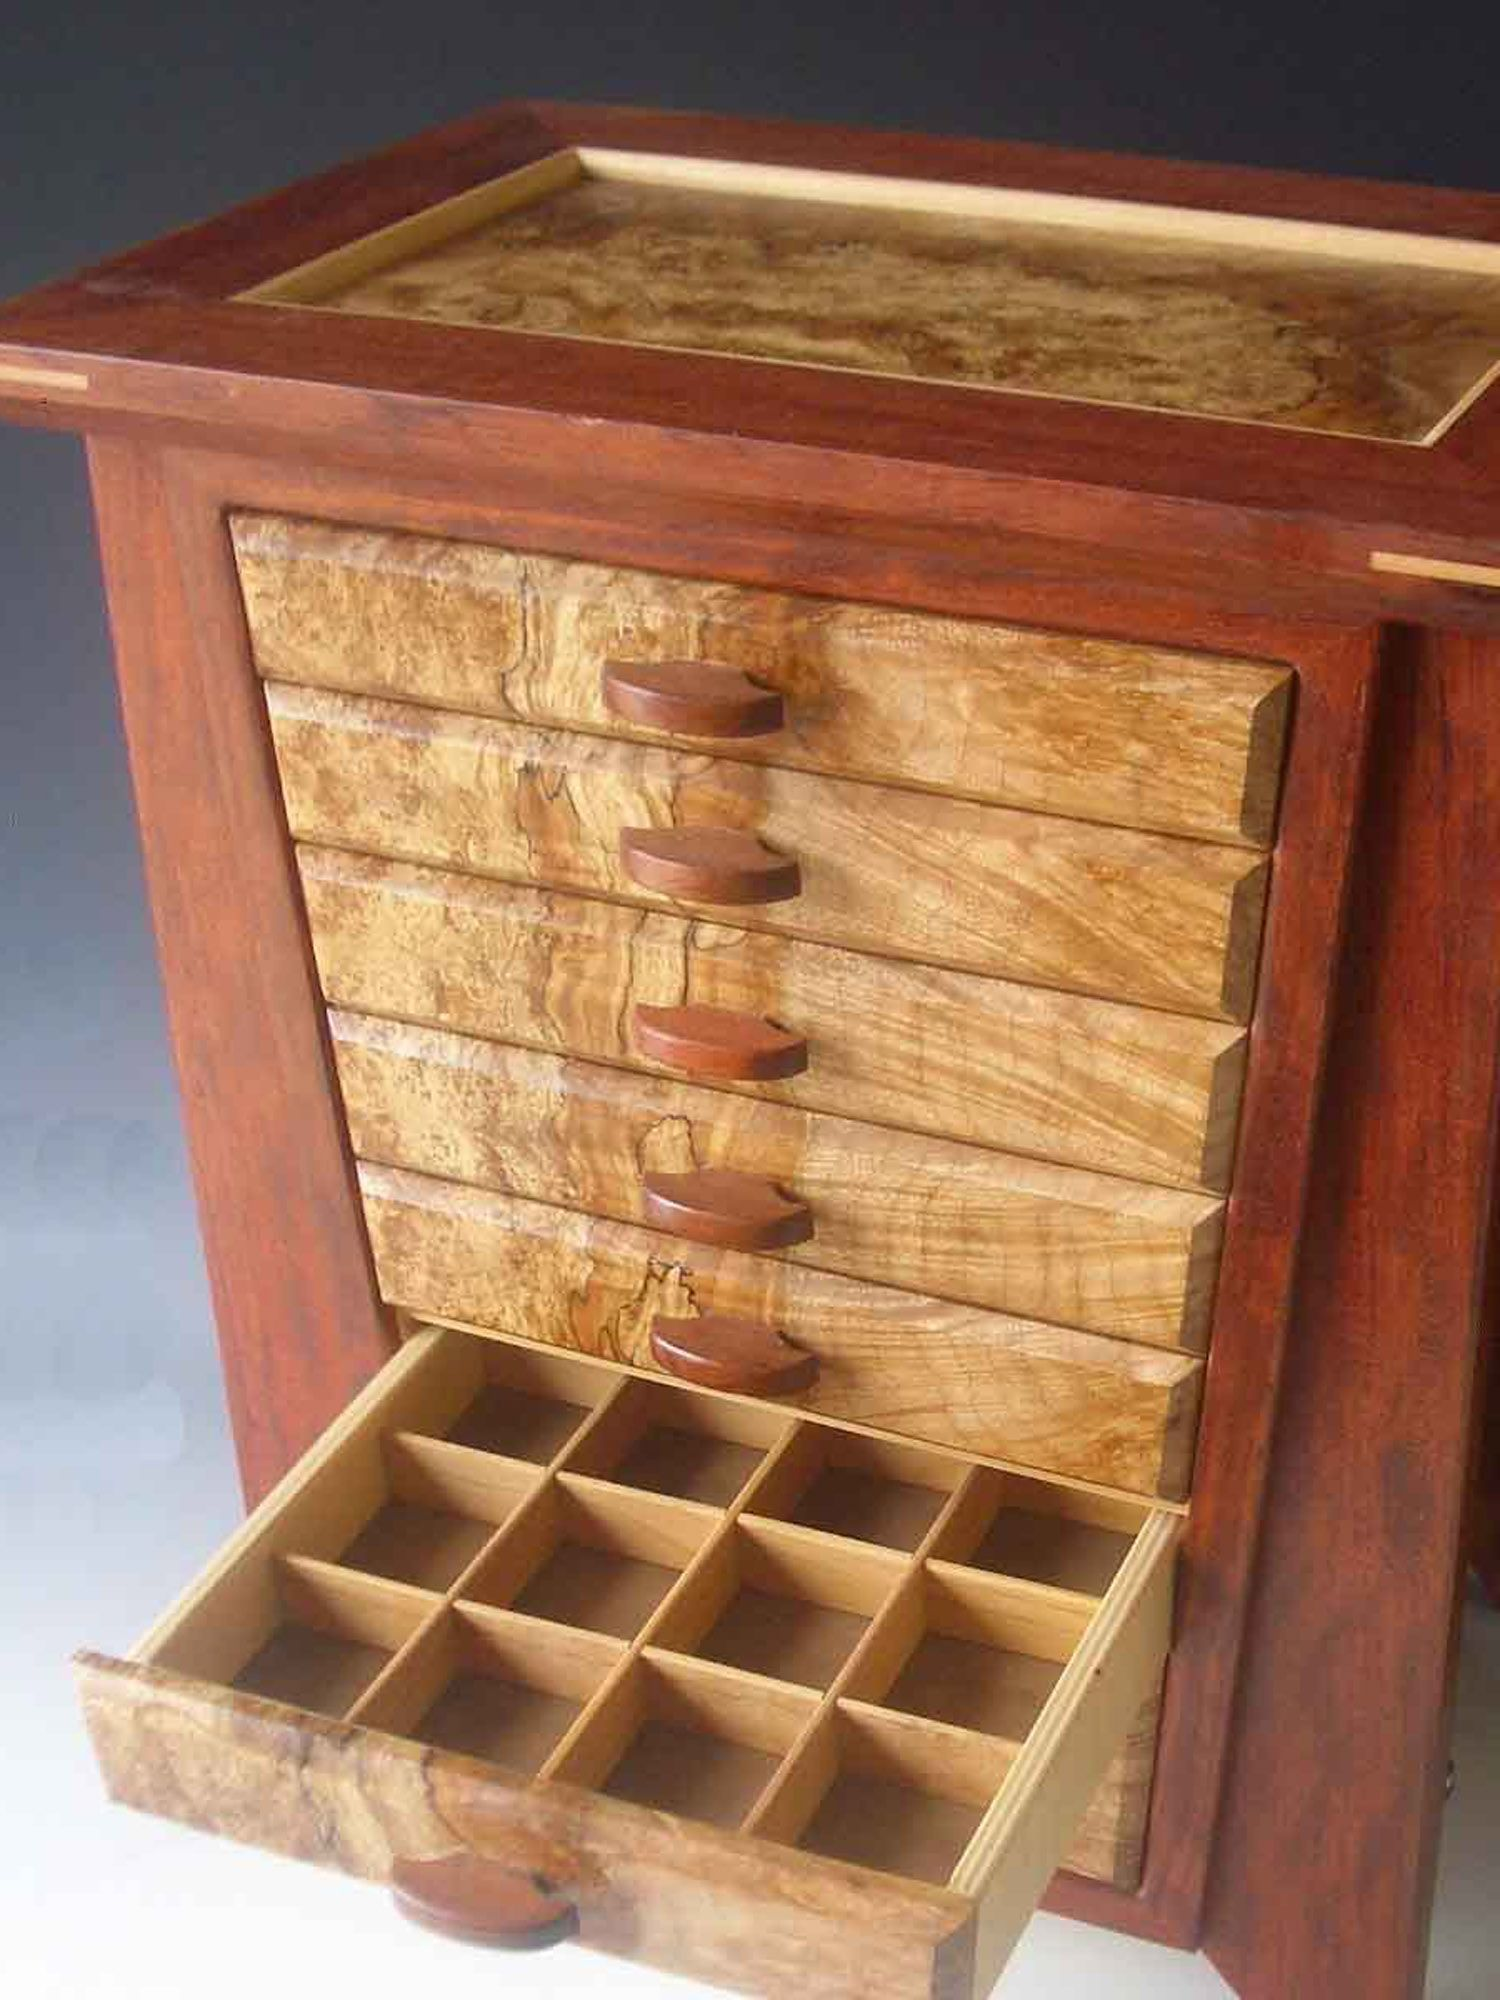 My handmade jewelry boxes are made of exotic woods each one is